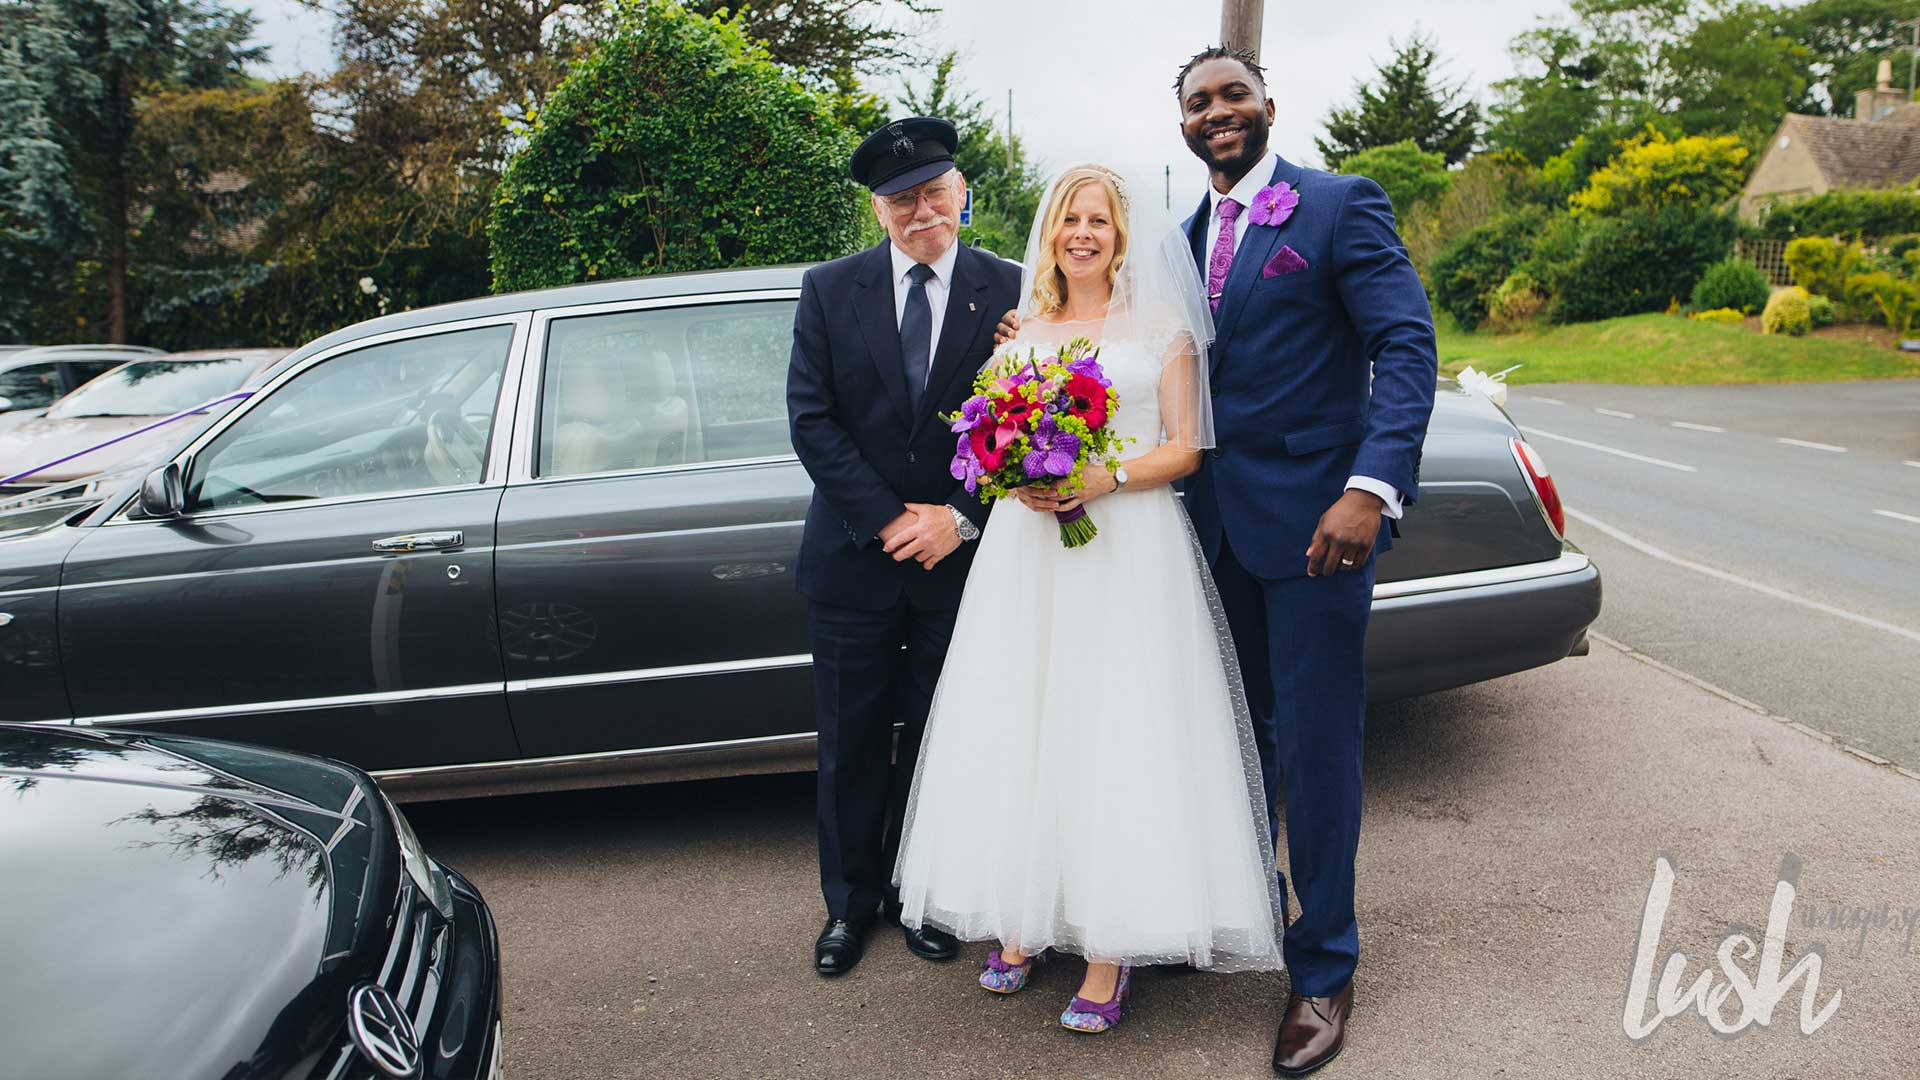 Michael And Lucy Azure Wedding Cars - Bentley chauffeur